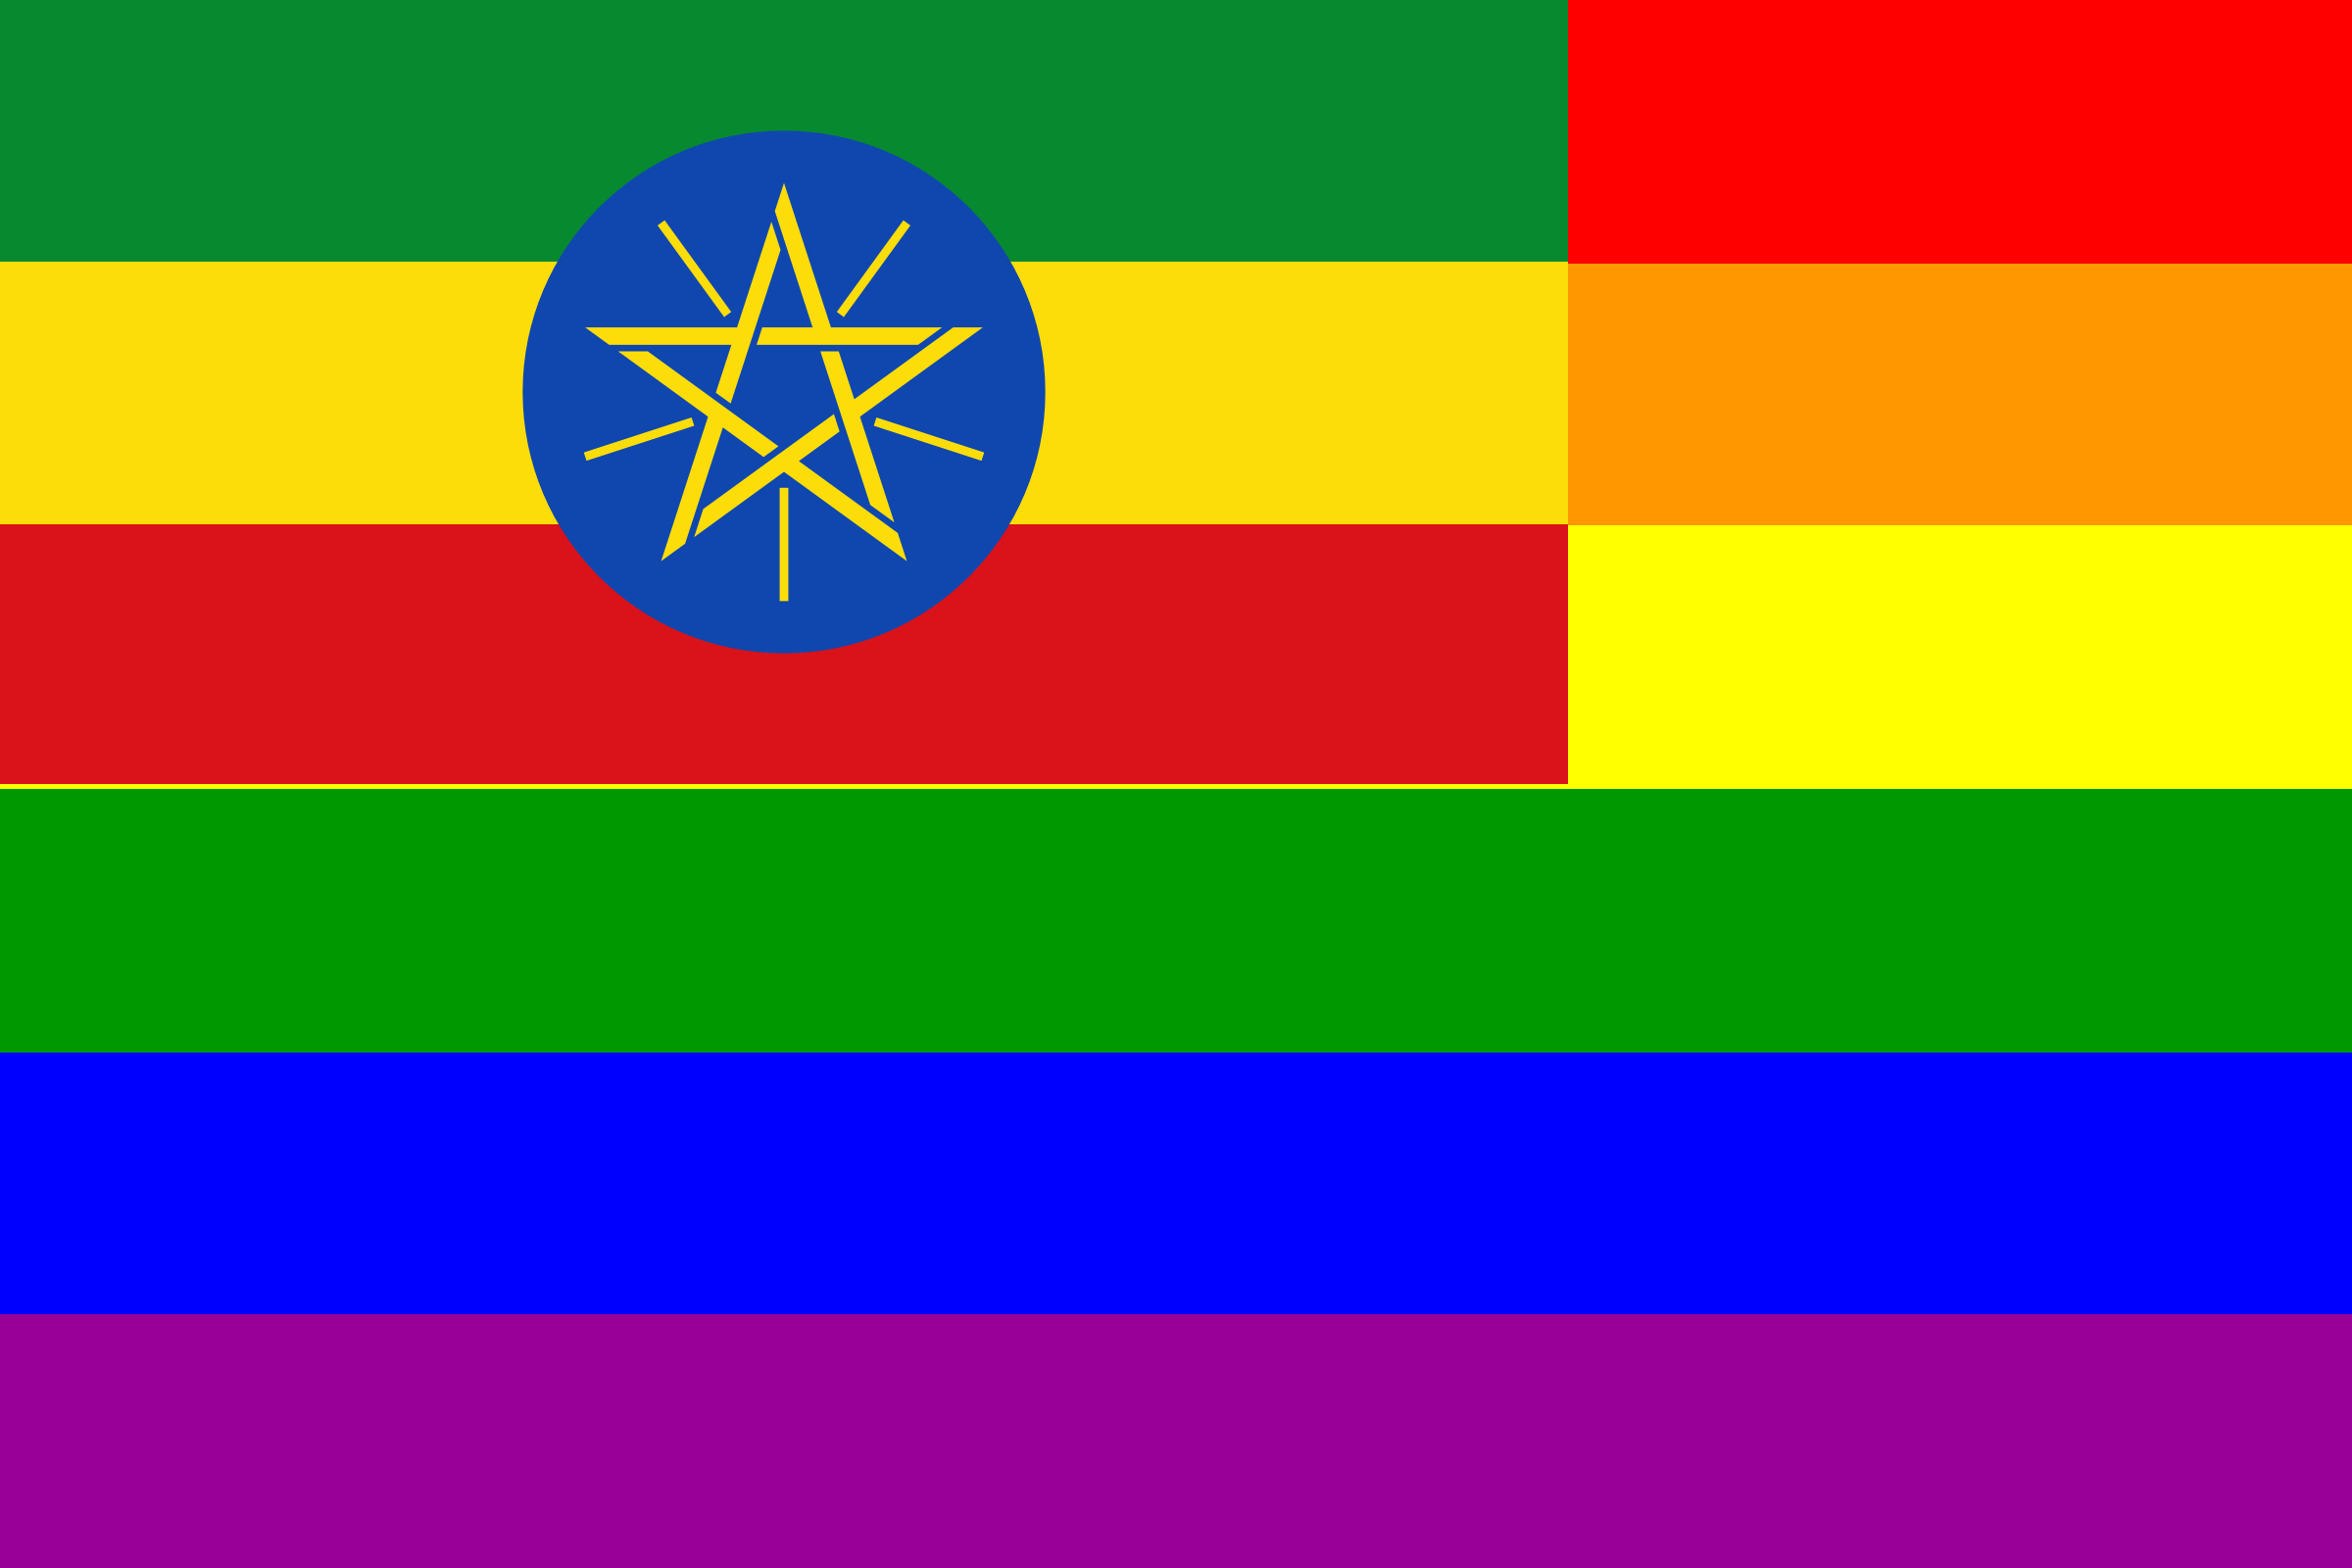 The Ethiopia Rainbow Flag by AdamStanislav